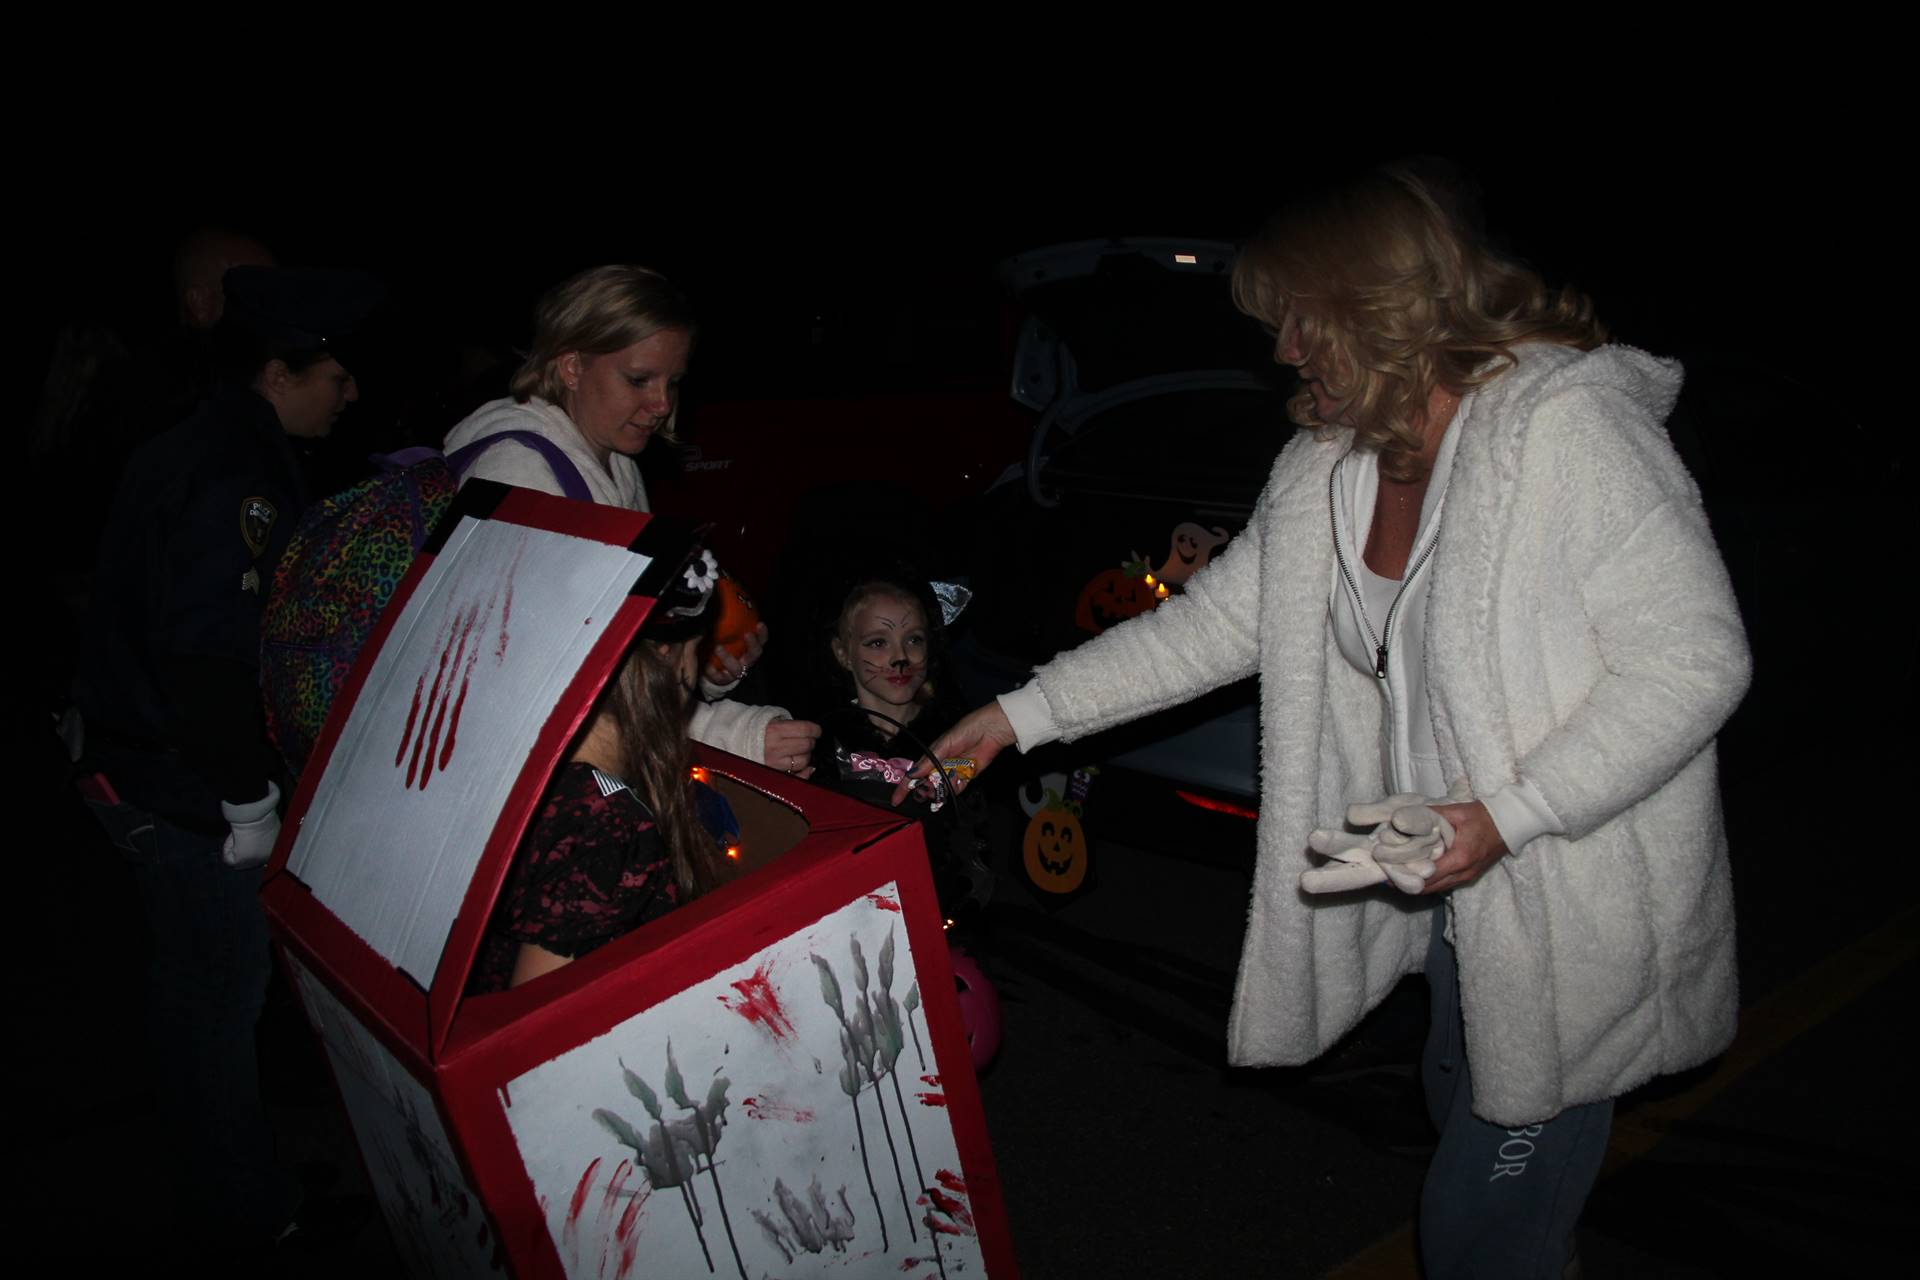 person handing out candy at trunk or treat event